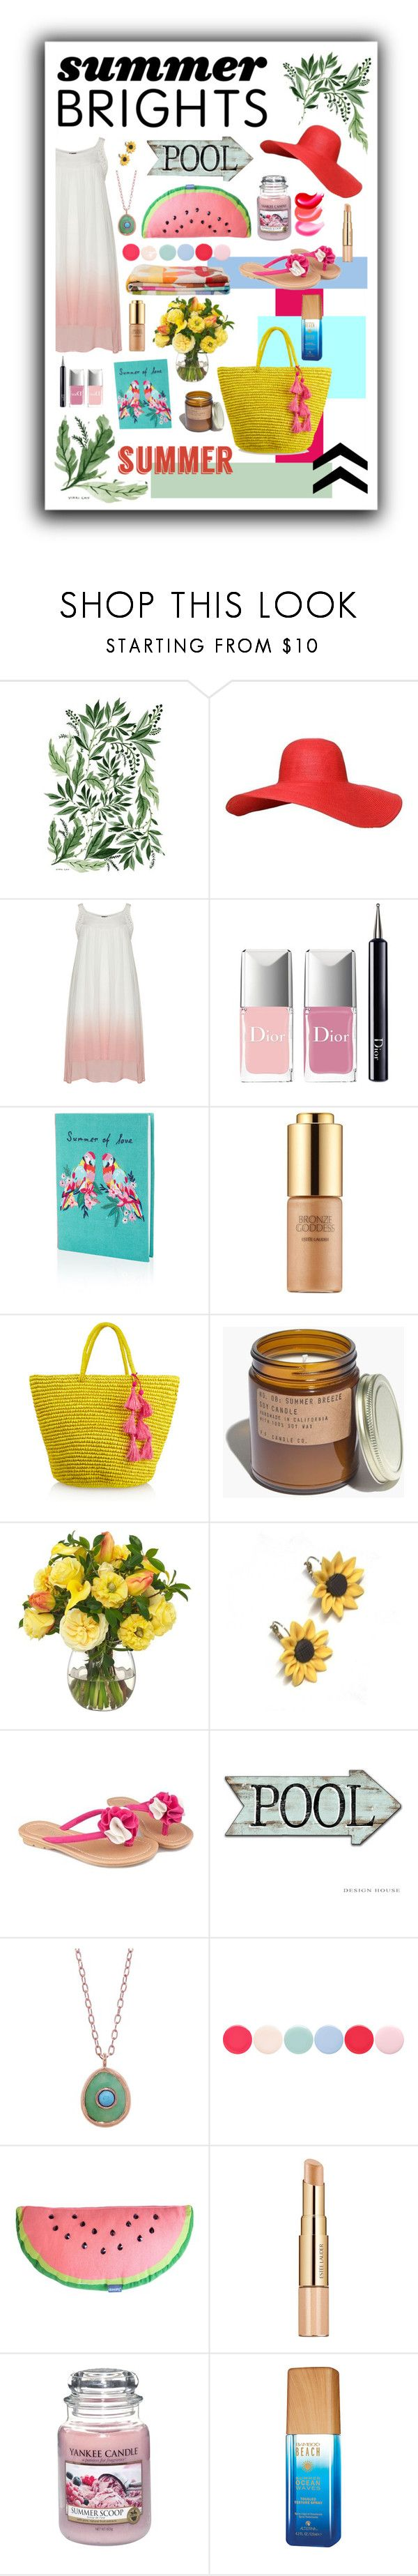 """Untitled #117"" by cilnyeol ❤ liked on Polyvore featuring Christian Dior, Accessorize, Estée Lauder, Sensi Studio, Madewell, Diane James, Summer and Silver, Pascale Monvoisin, Nails Inc. and Yankee Candle"